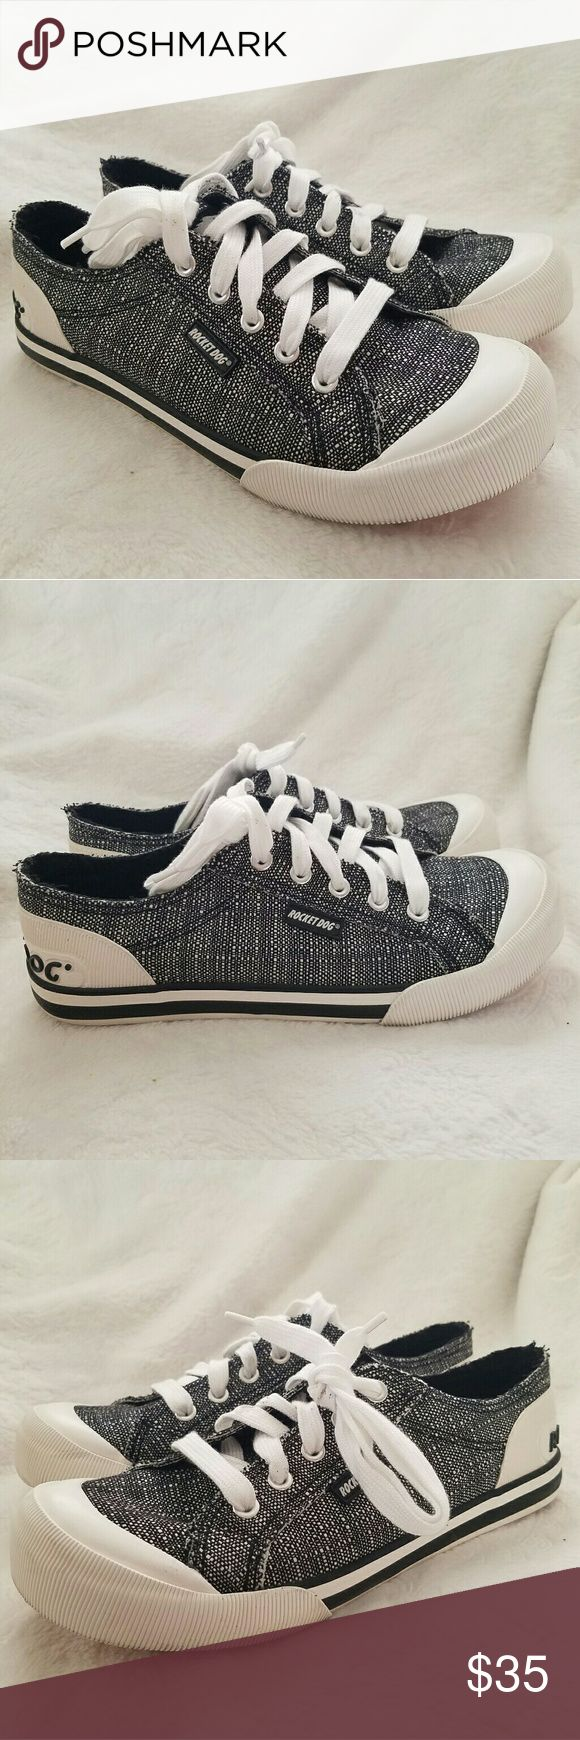 Jazzin Kingsley Sneaker Your staple lace-up must-have sneaker. Features stylish textured canvas print, rubber sole, grommets for breathability, and branded heel.  Vulcanized Lace-Up Casual Sneaker Soft Cotton Lining And Footbed Rubber Sole 2.05 Lb Used but in great condition :) Rocket Dog Shoes Sneakers